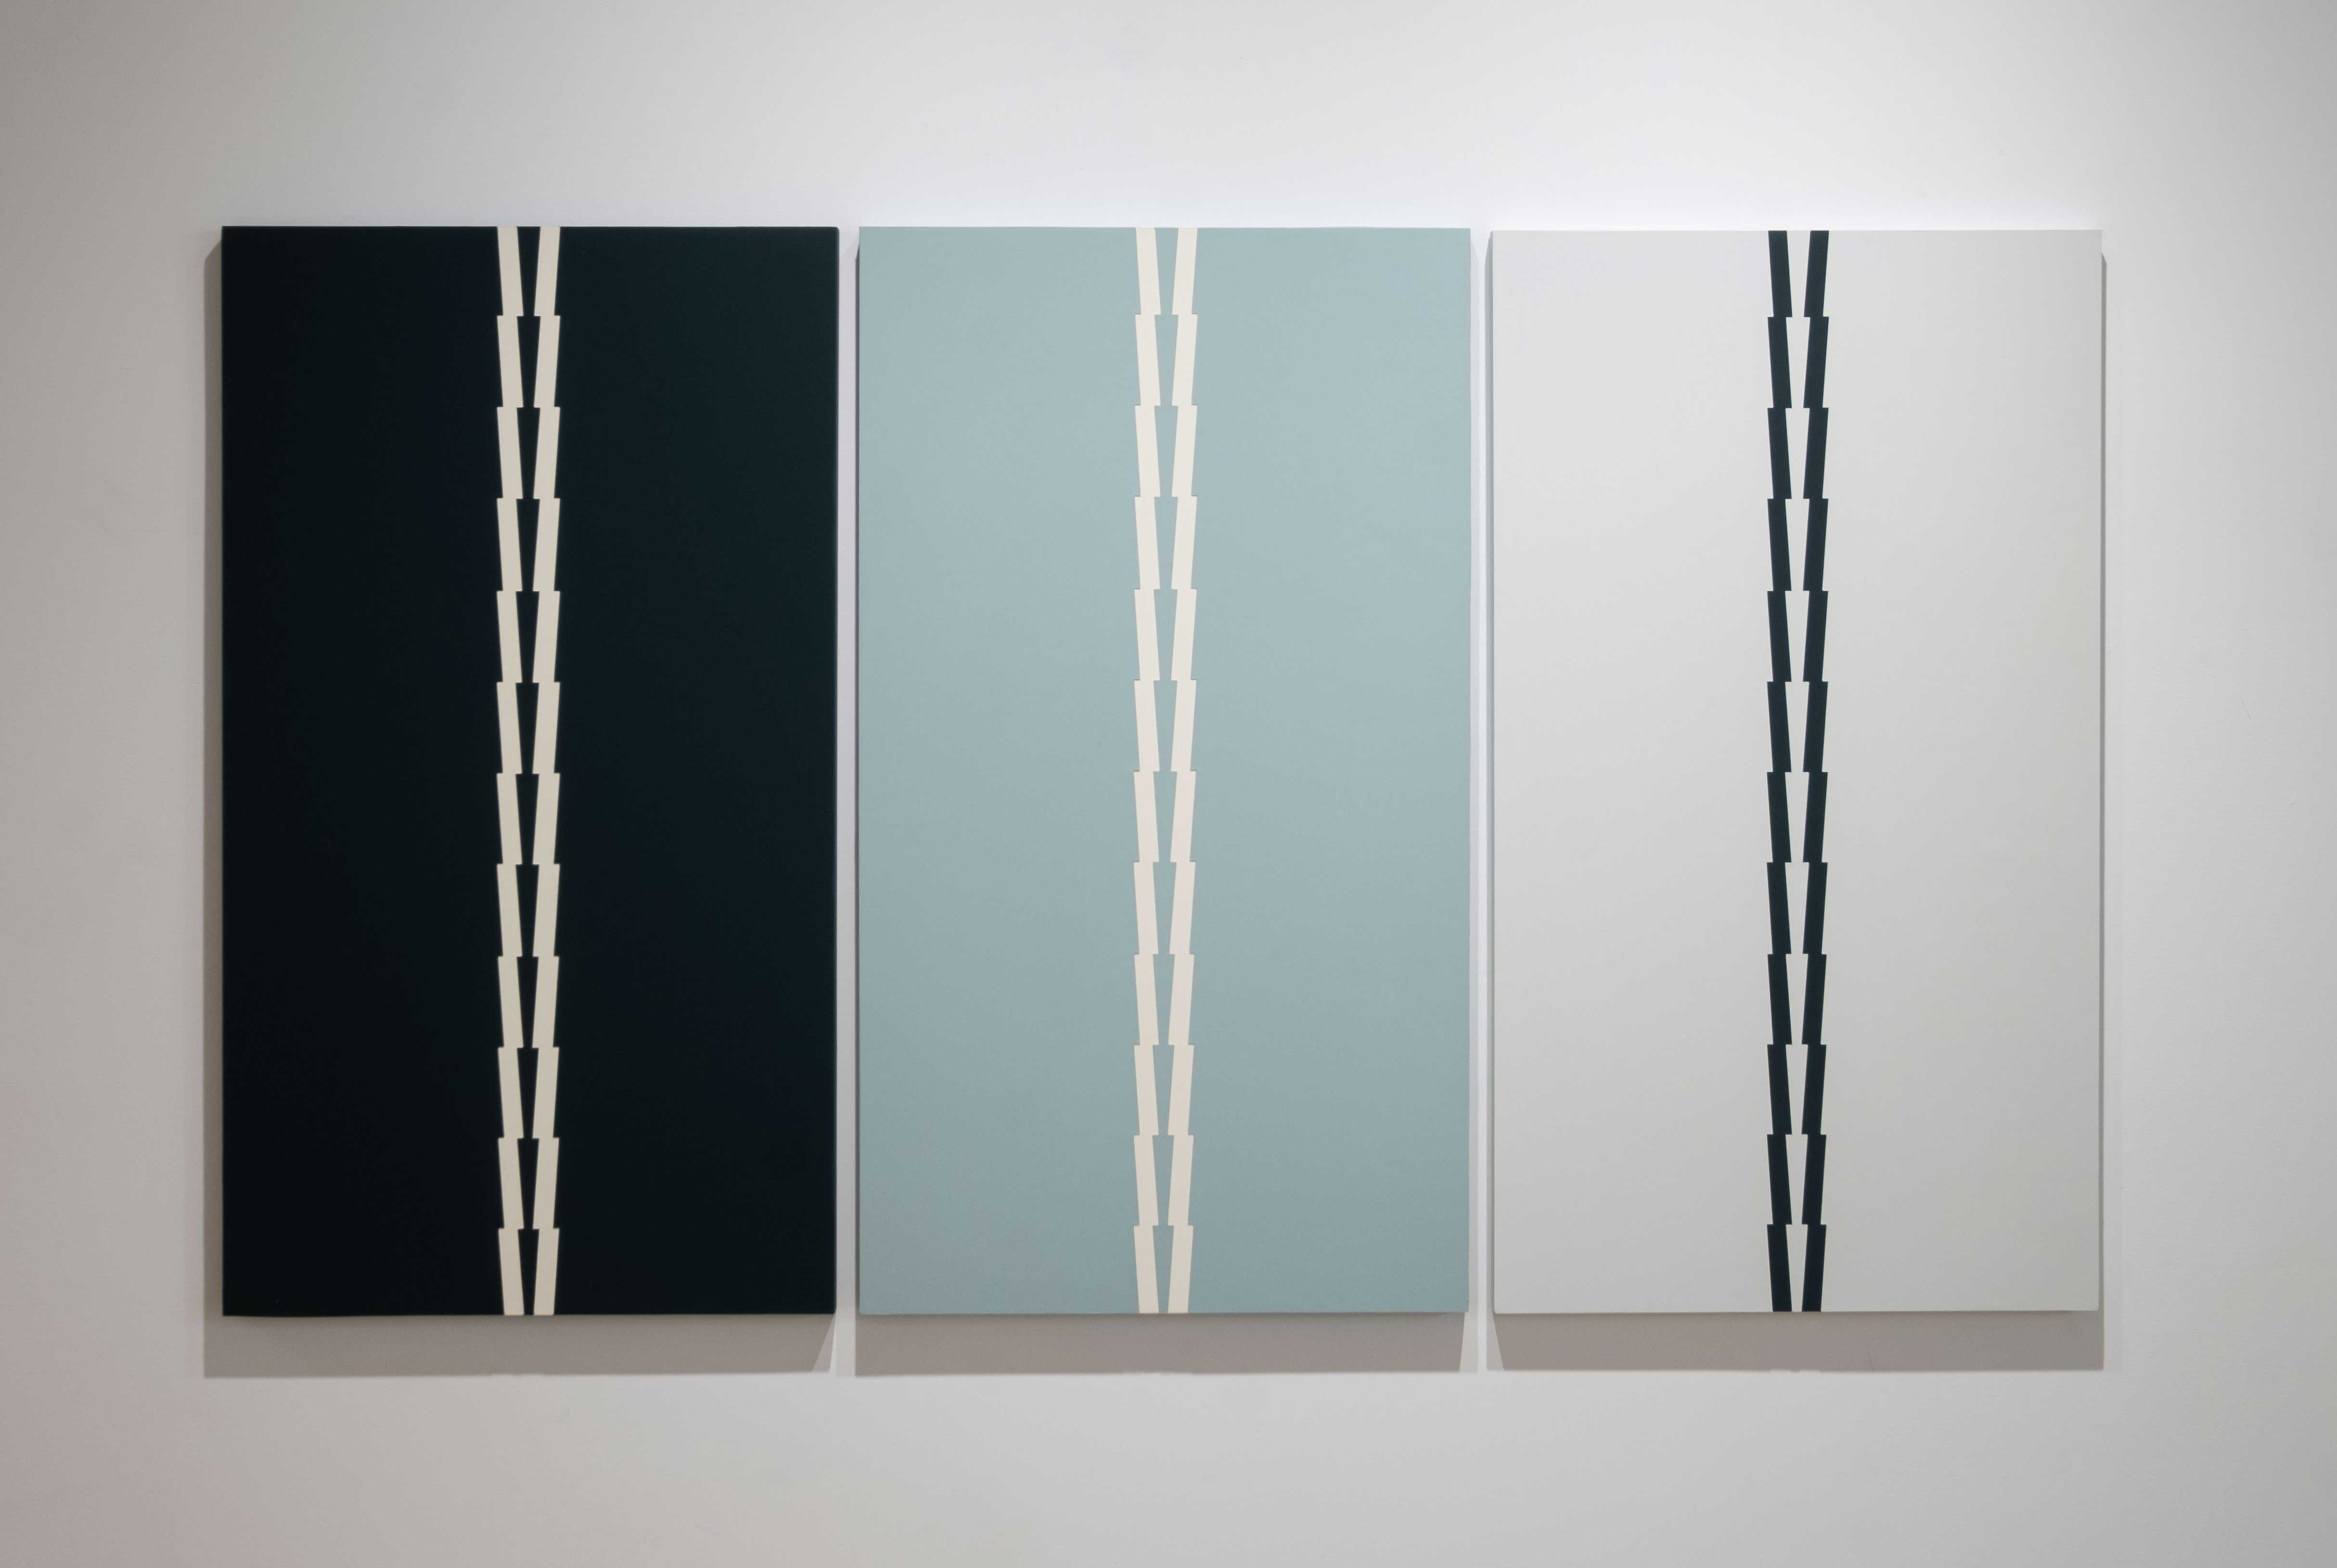 Tess Jaray 2015 Oil on board 35.5 x 60 inches (89.9 x 152.4 cm) 2019 Marc Straus Gallery